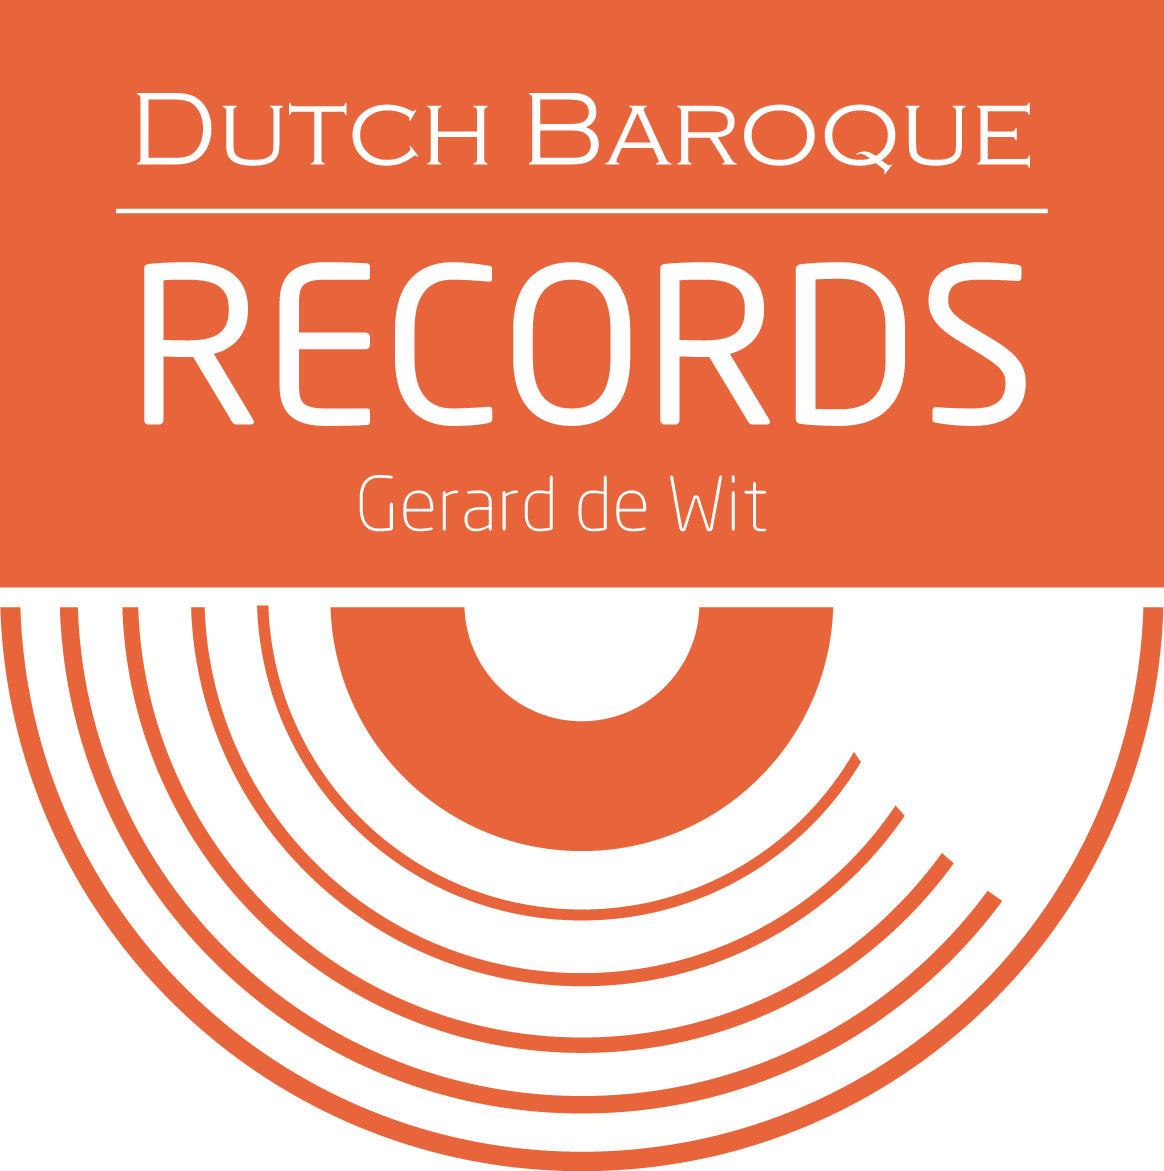 DutchBaroqueRecordsLogo_orange